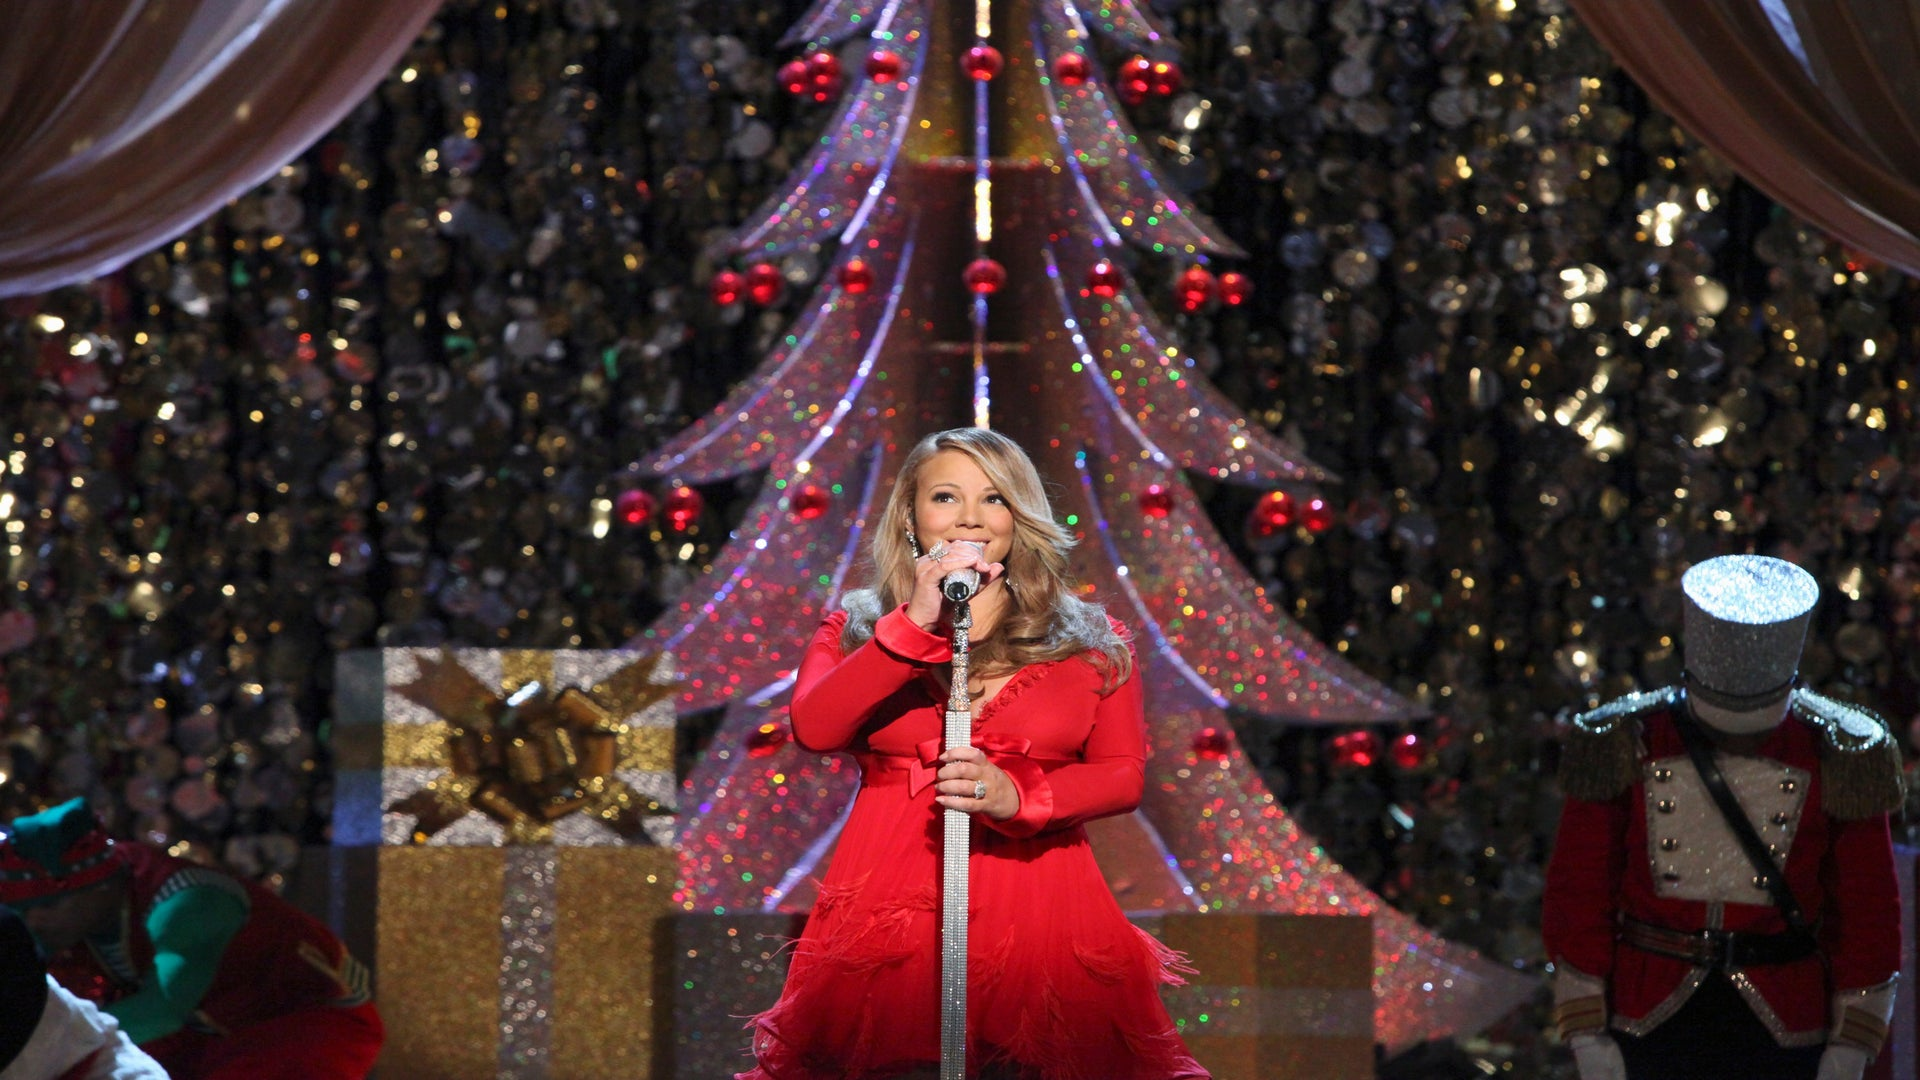 Ring in the Holidays with ESSENCE.com's Christmas Playlist!